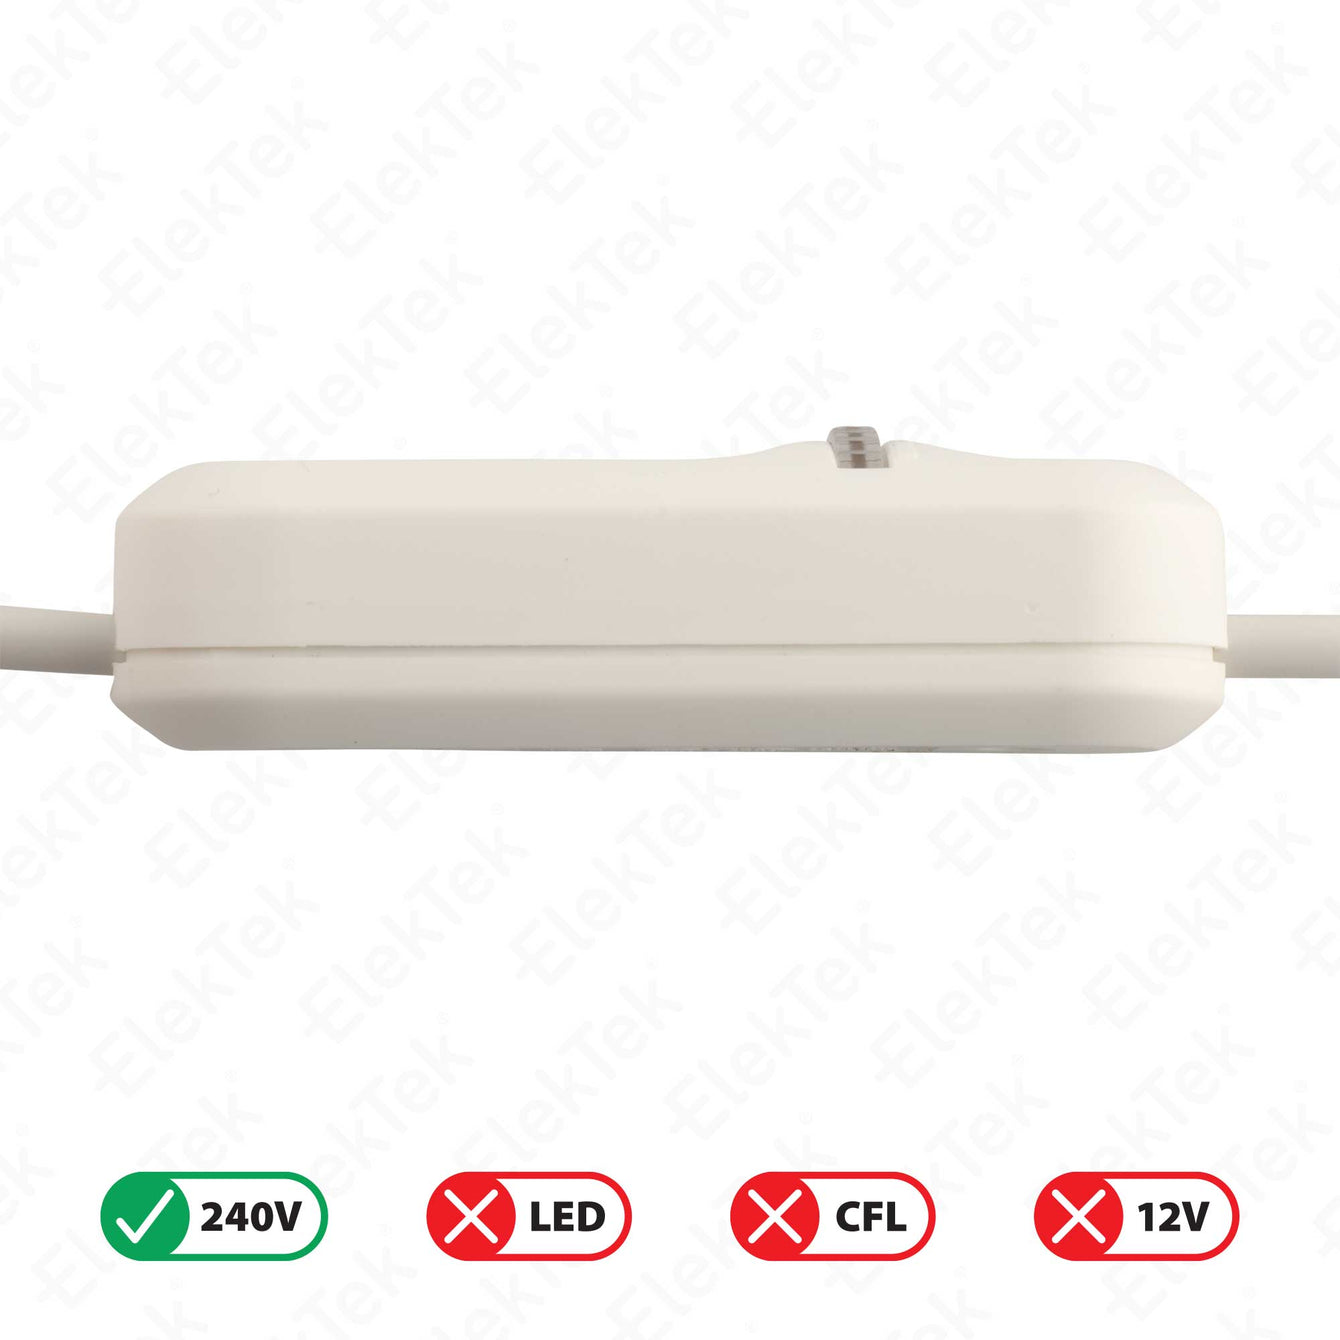 ElekTek In Line Rotary Dimmer Switch Rated 20-160w 240v AC 3 Core Suitable For Incandescent Lamps and Bulbs Colours Transparent